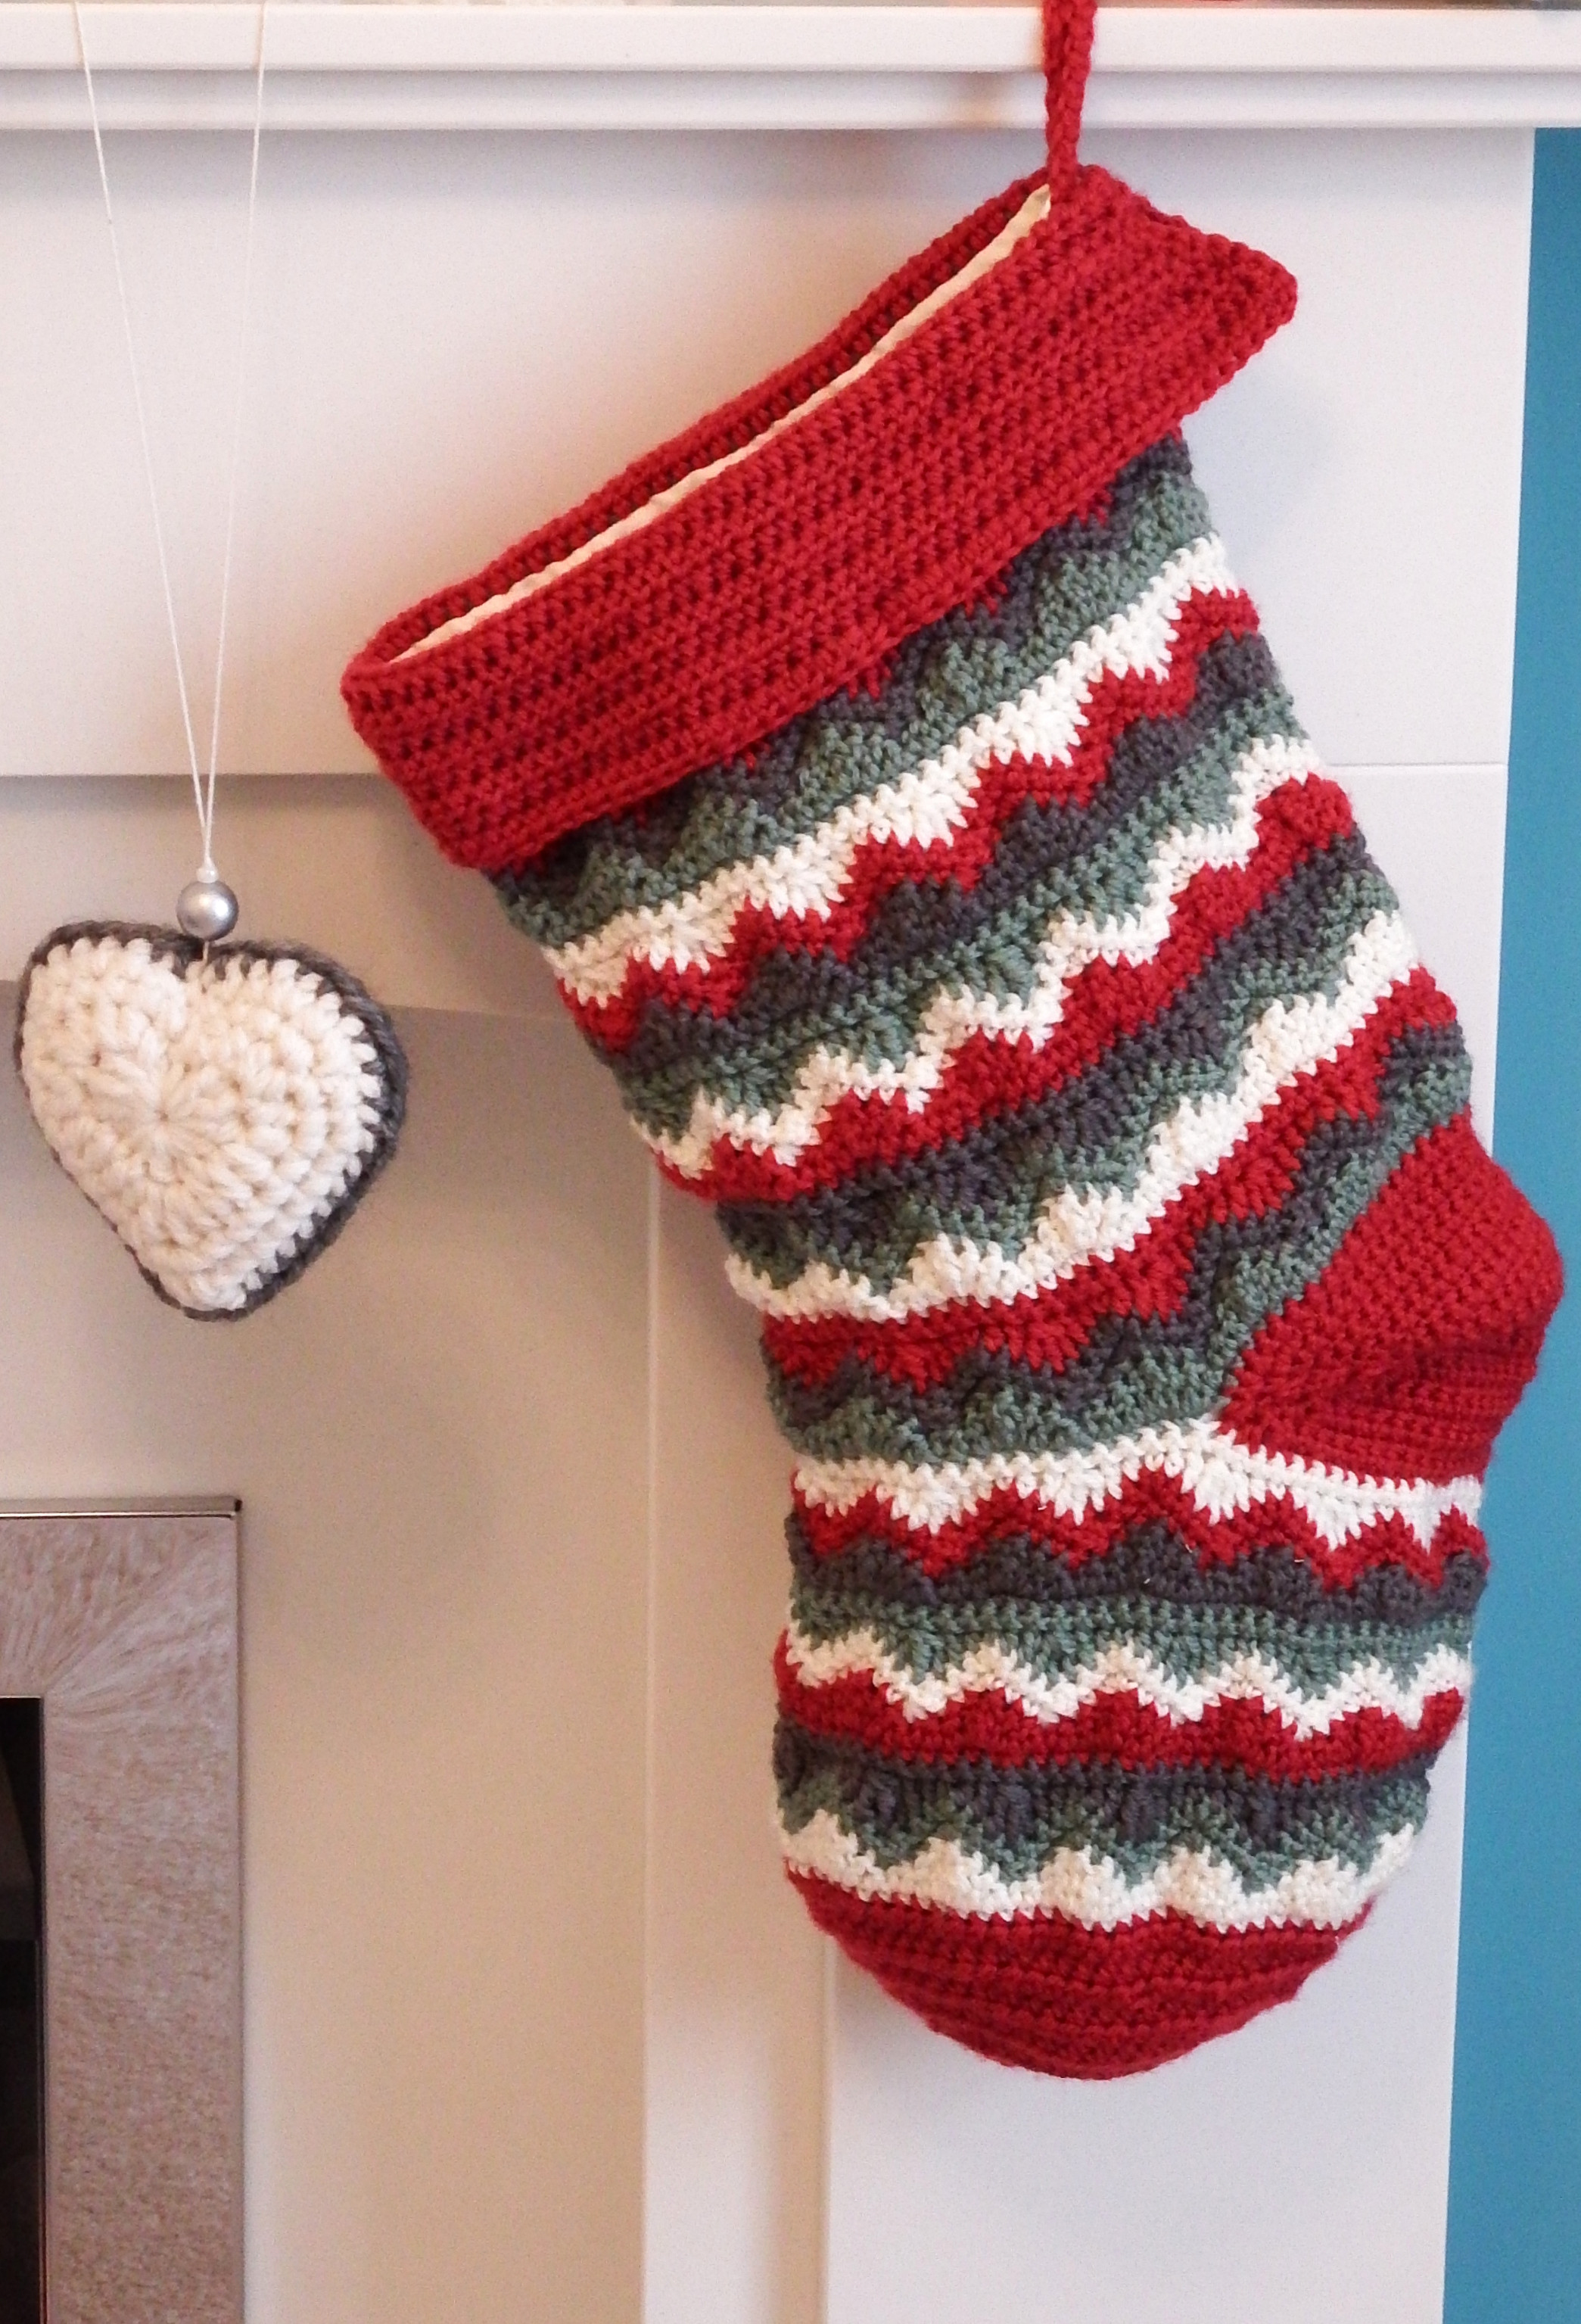 Lovely Christmas Stocking Crochet Pattern for Christmas Stocking Of Elegant 40 All Free Crochet Christmas Stocking Patterns Patterns Hub Crochet Pattern for Christmas Stocking